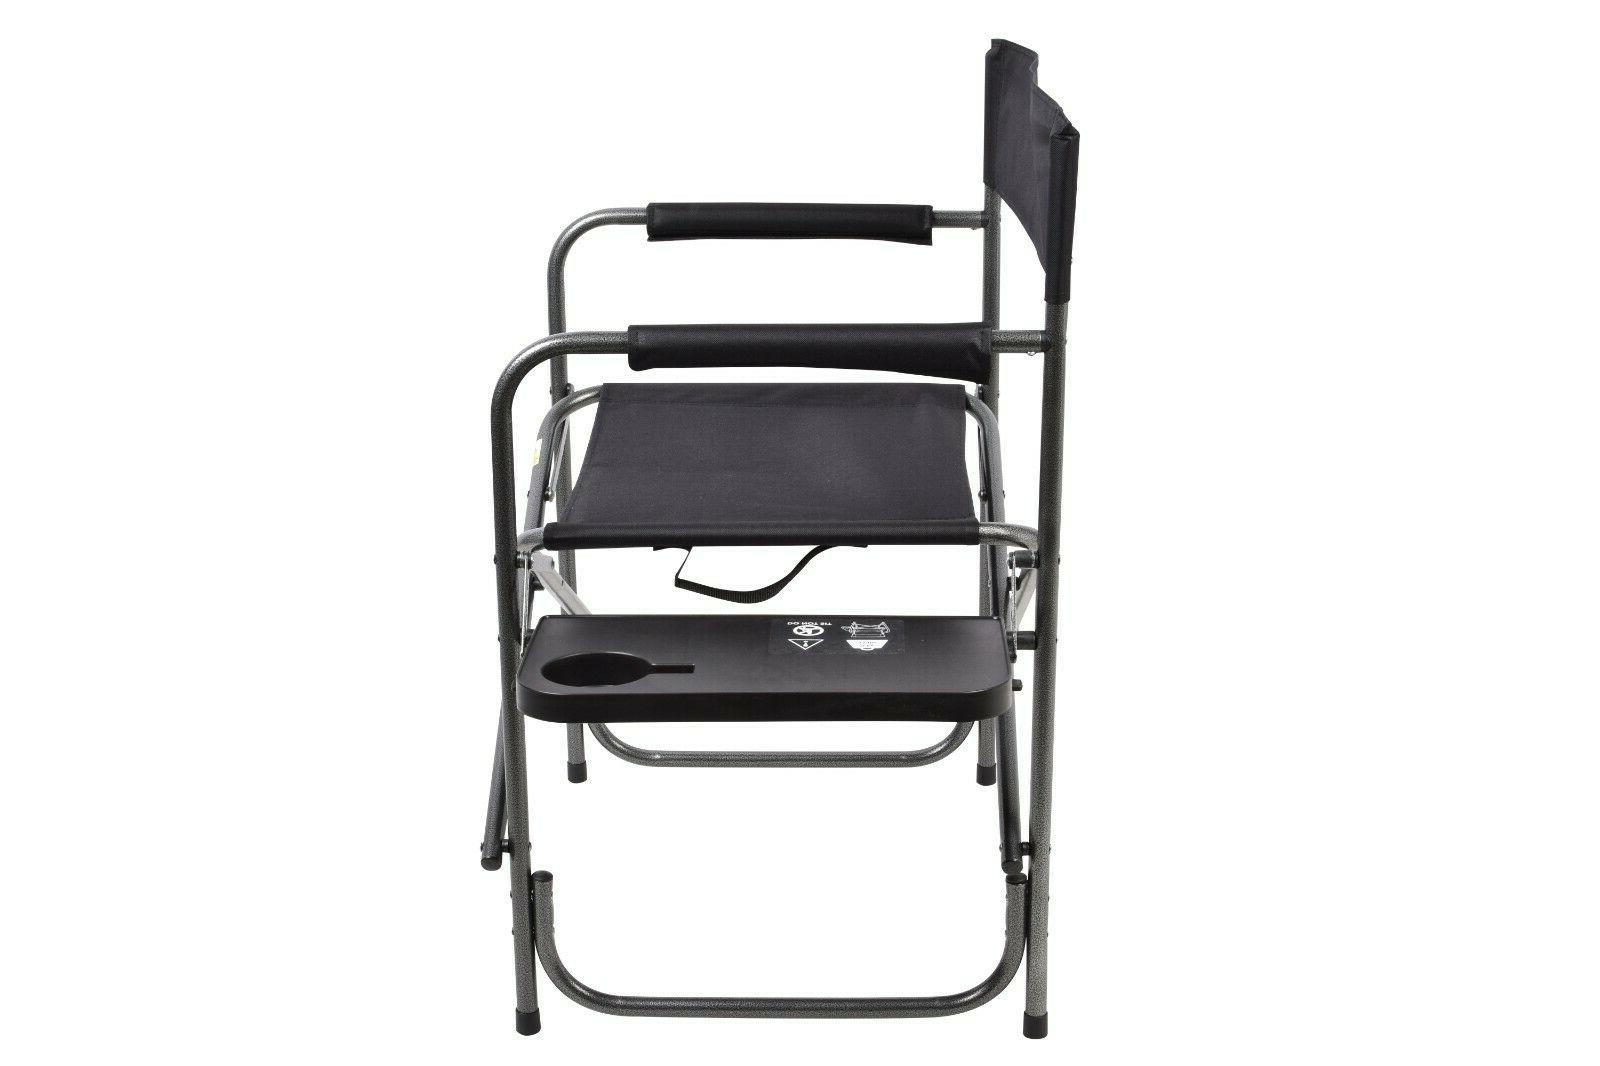 Outdoor Camping Folding Duty Chair Foldout Side Table 400lbs